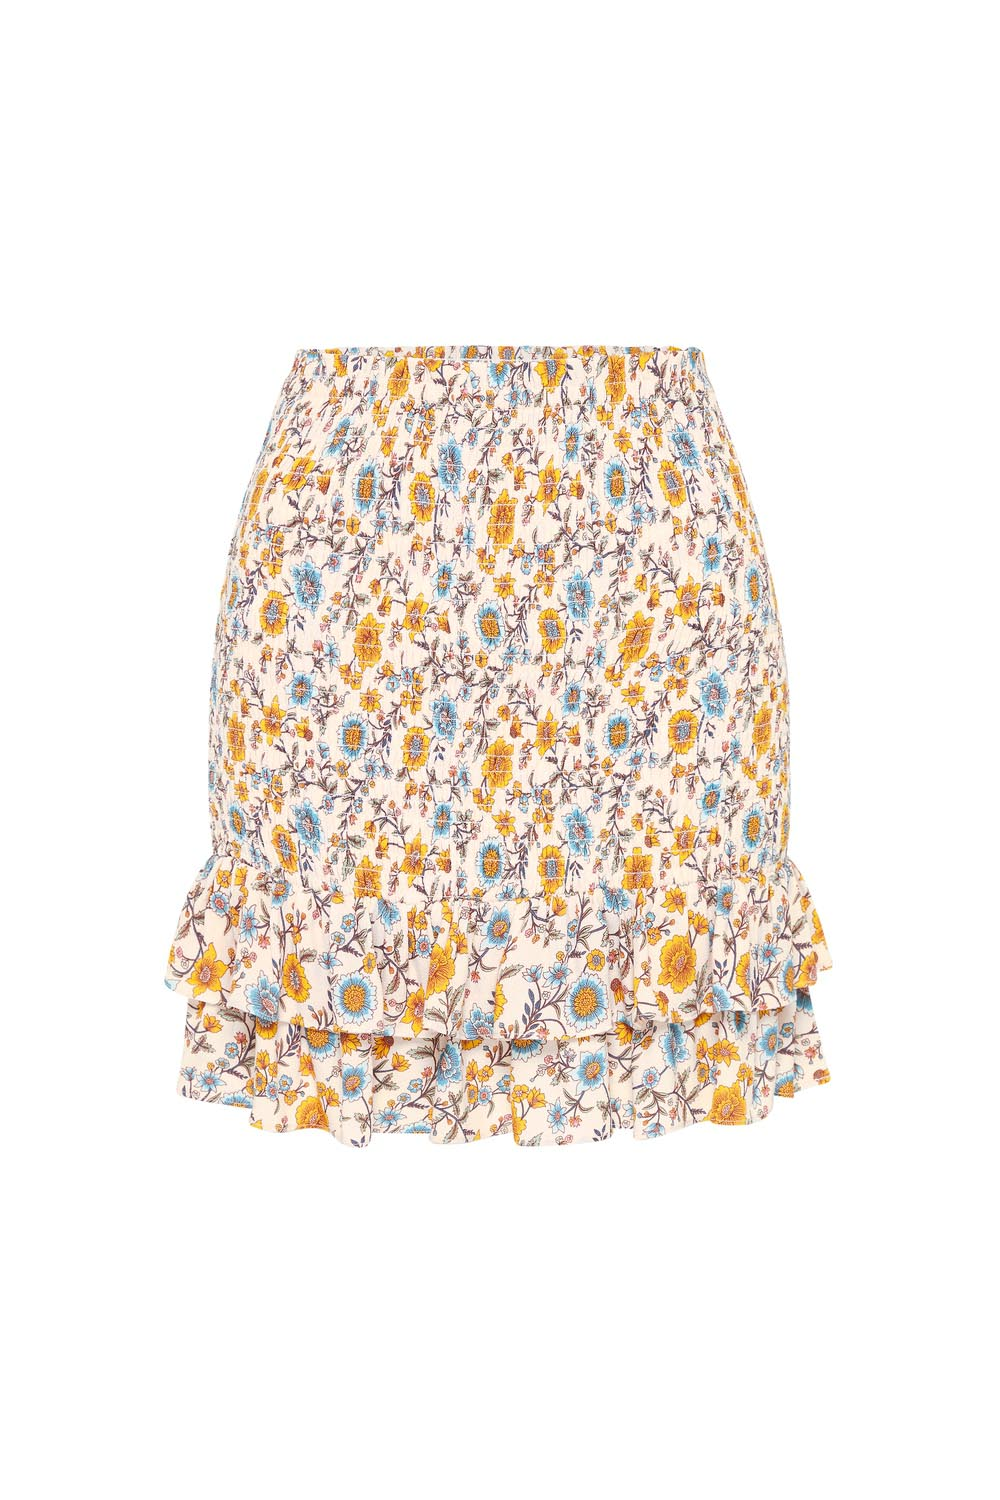 Bijoux Mini Skirt in Daisy